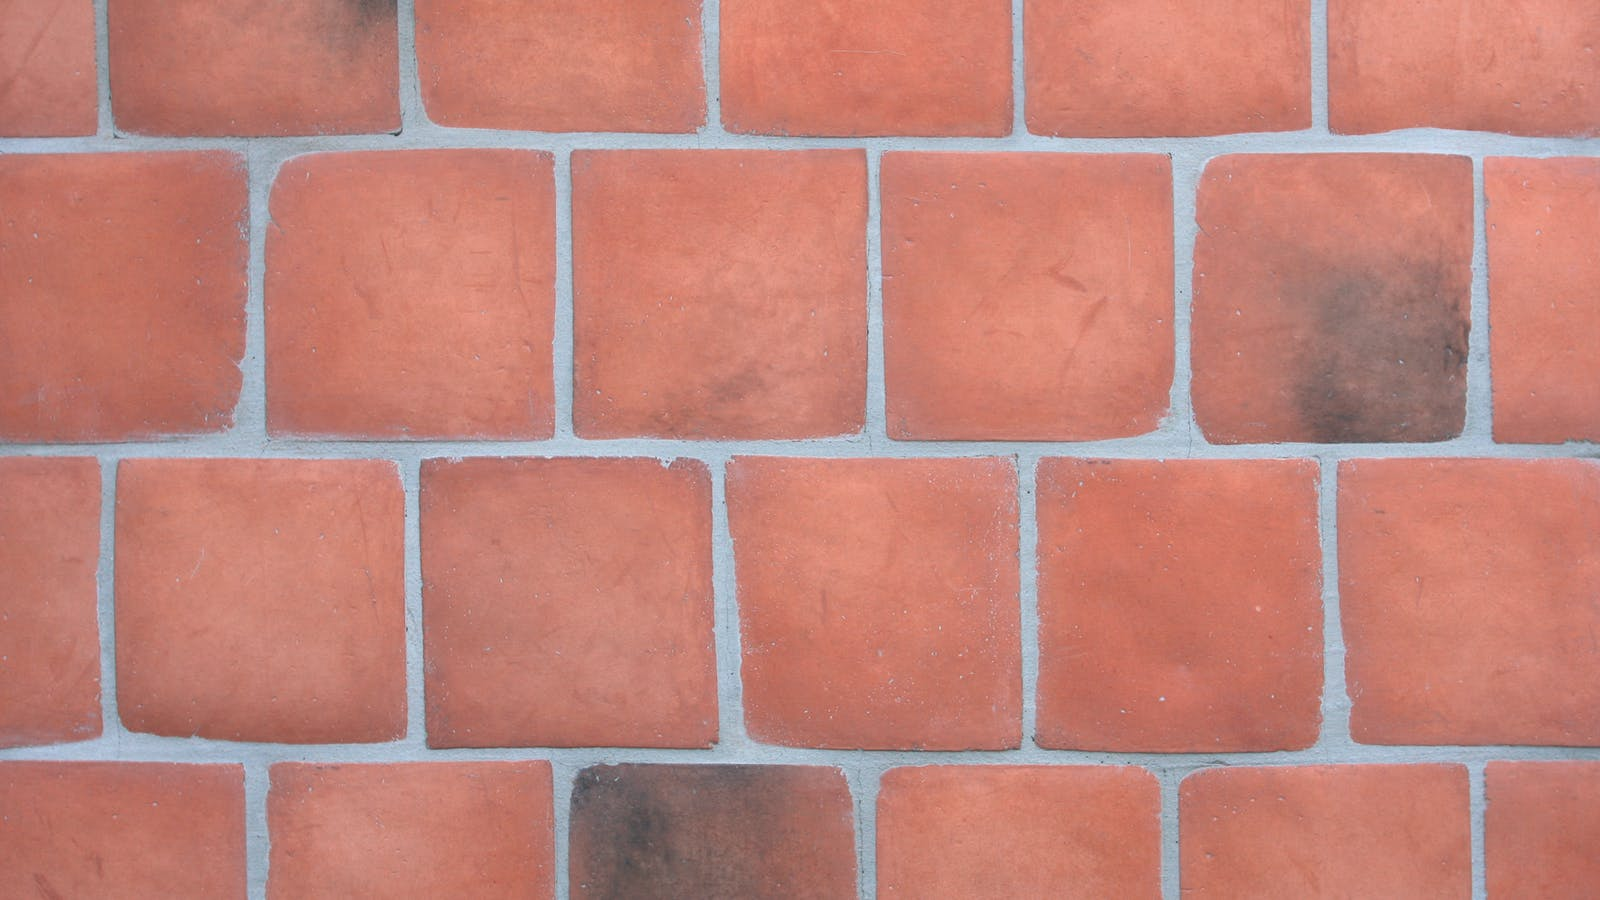 Sevilla Brick Paving